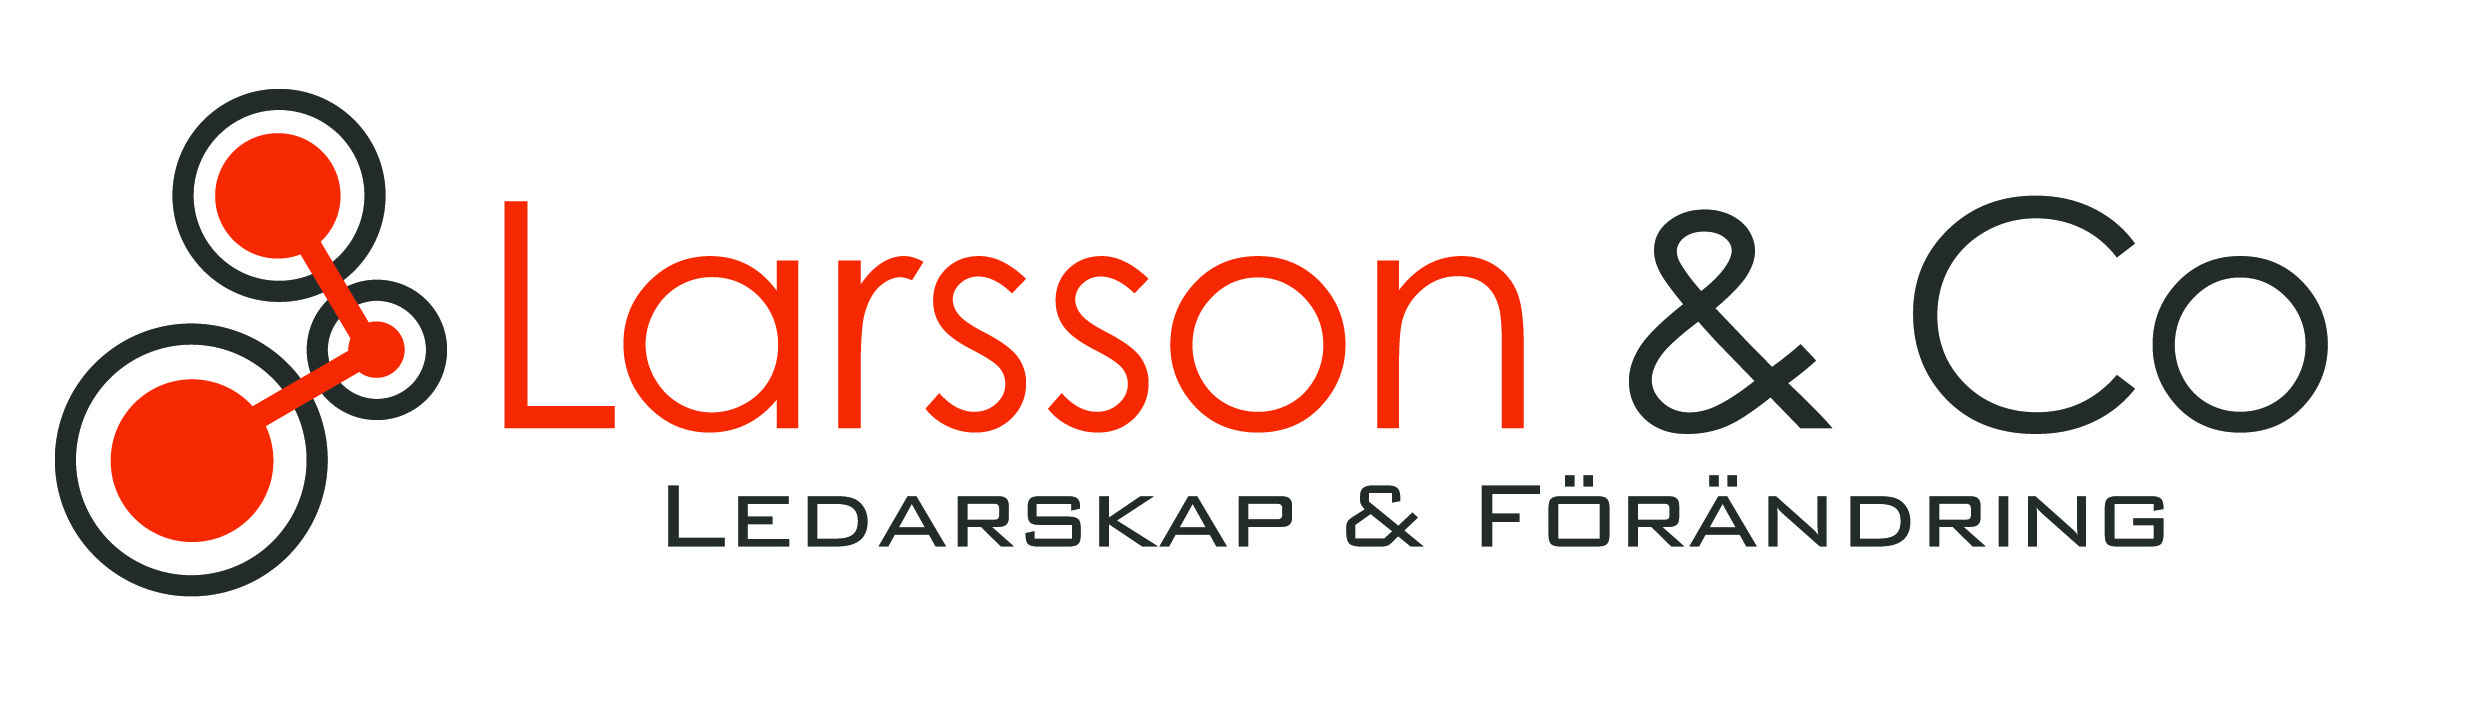 Larsson & Co